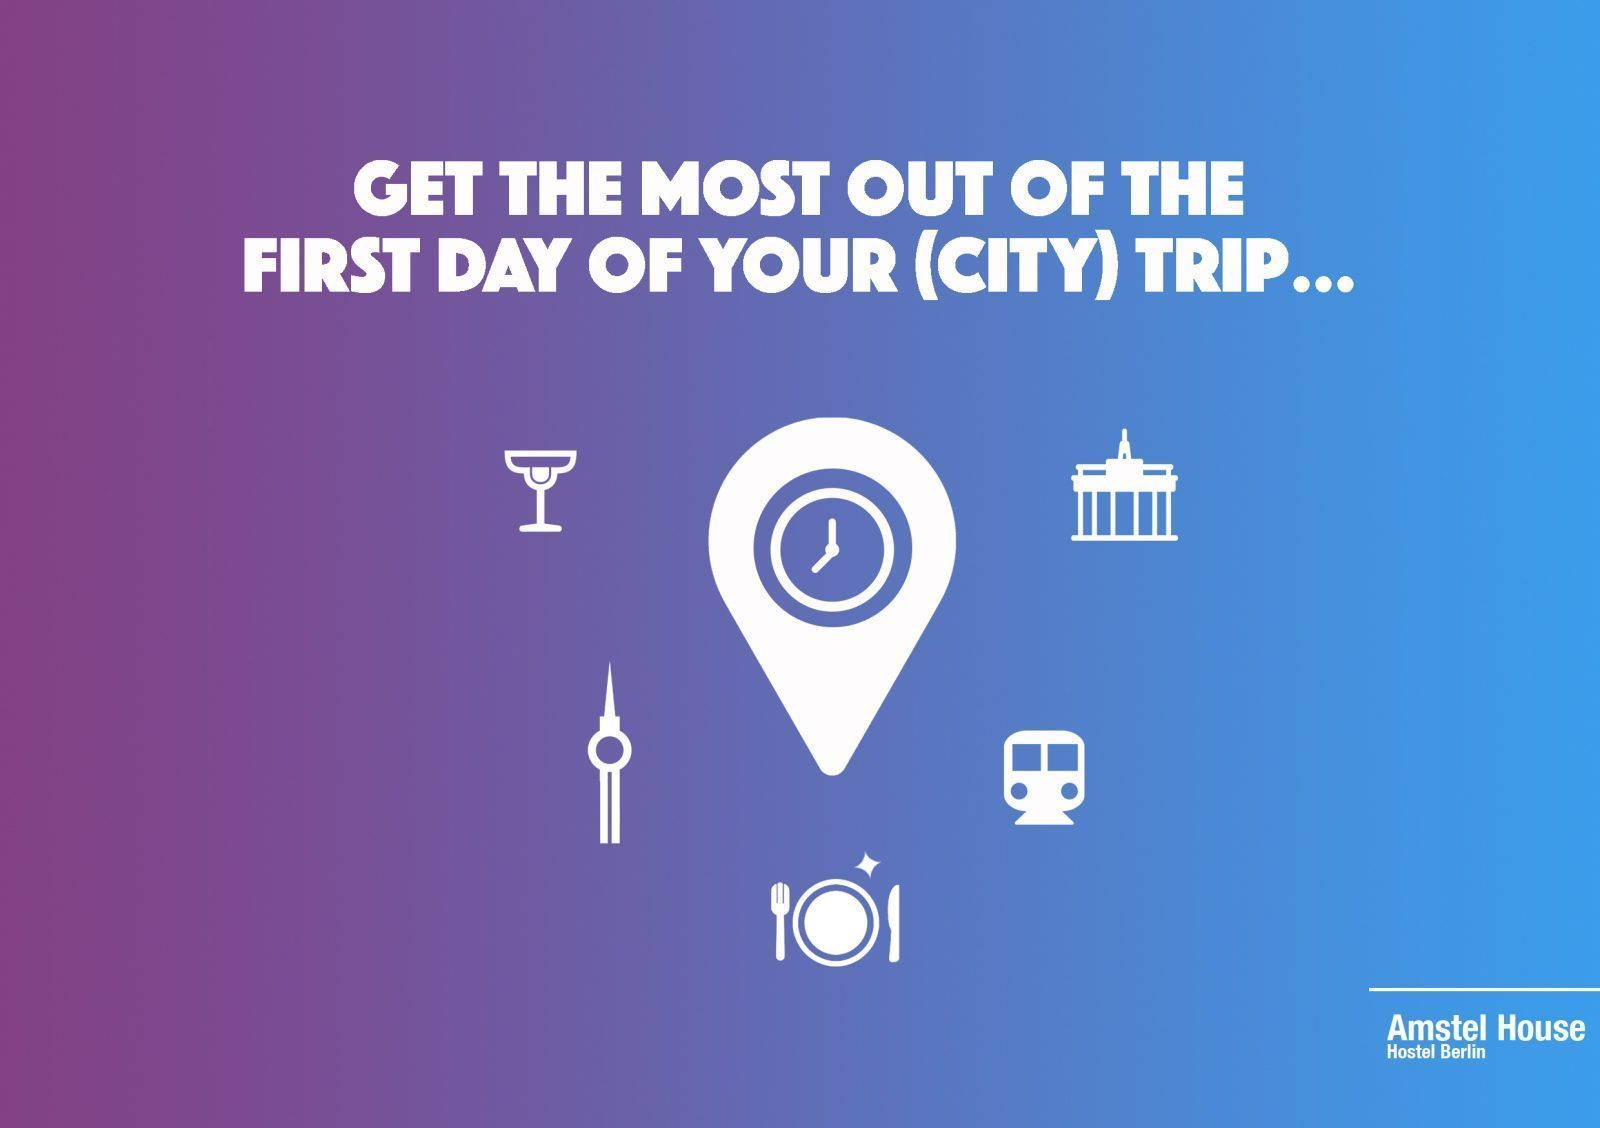 get the most out of your city trip